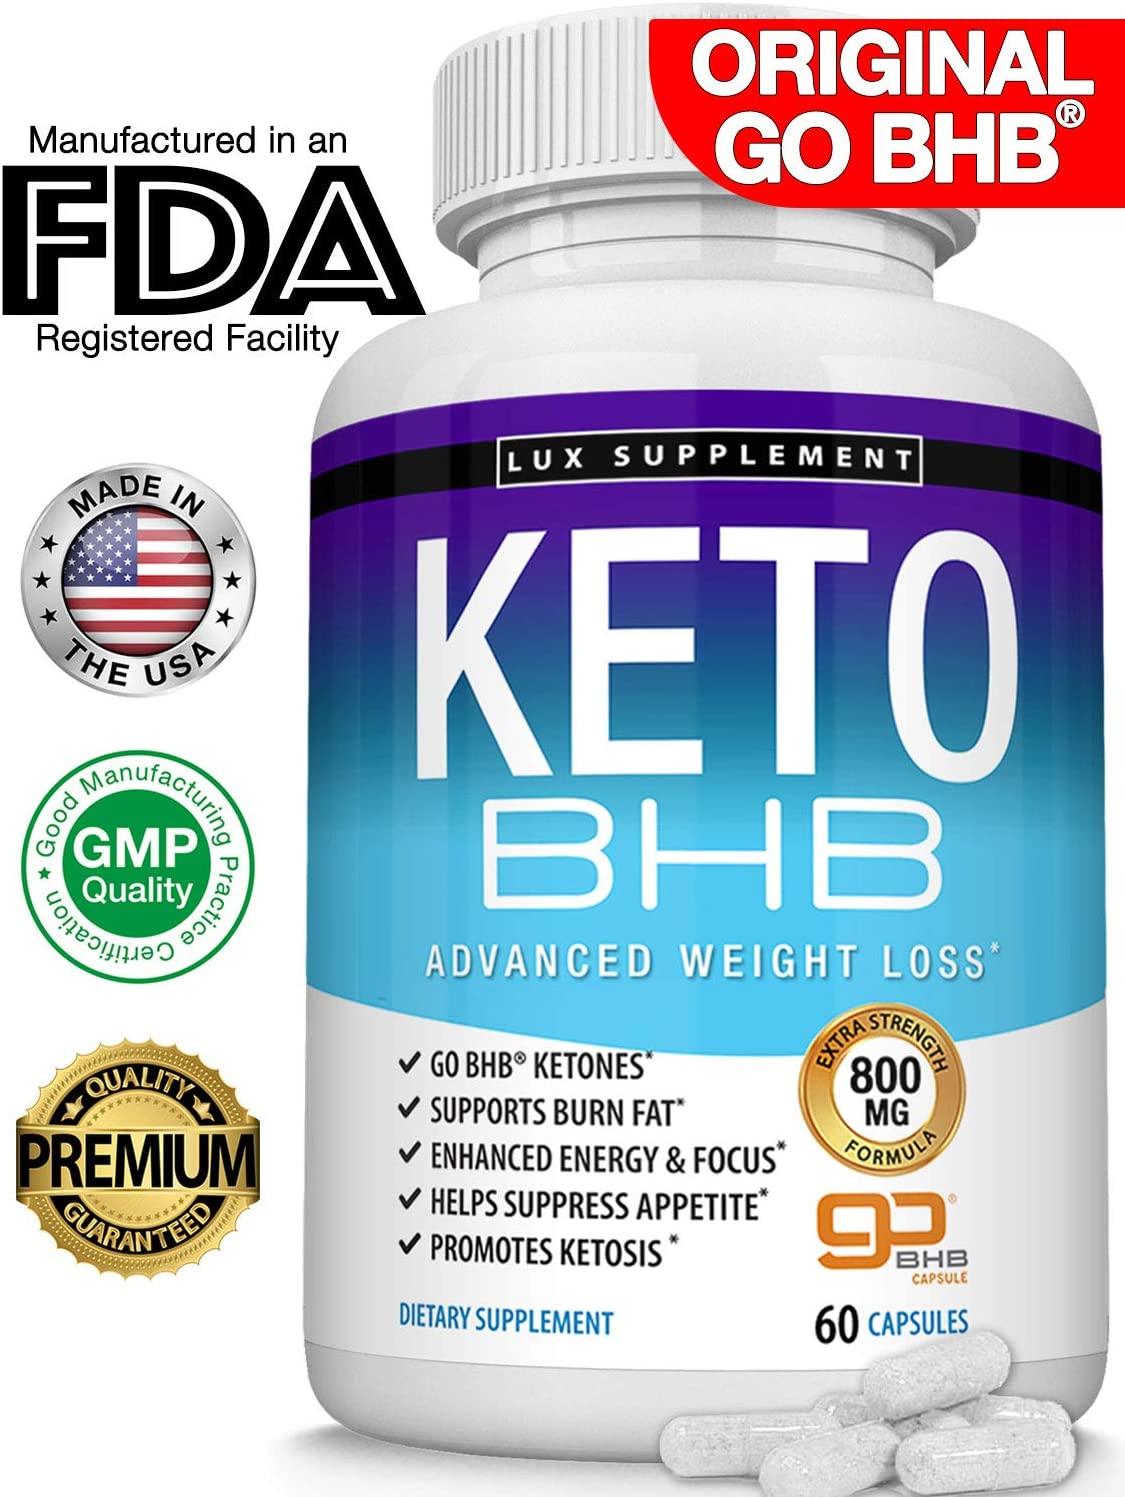 Keto Pills Advanced Weight Loss BHB Salt - Natural Ketosis Fat Burner Using Ketone & Ketogenic Diet, Boost Energy While Burning Fat, Fast & Effective Perfect for Men Women, 60 Capsules, Lux Supplement